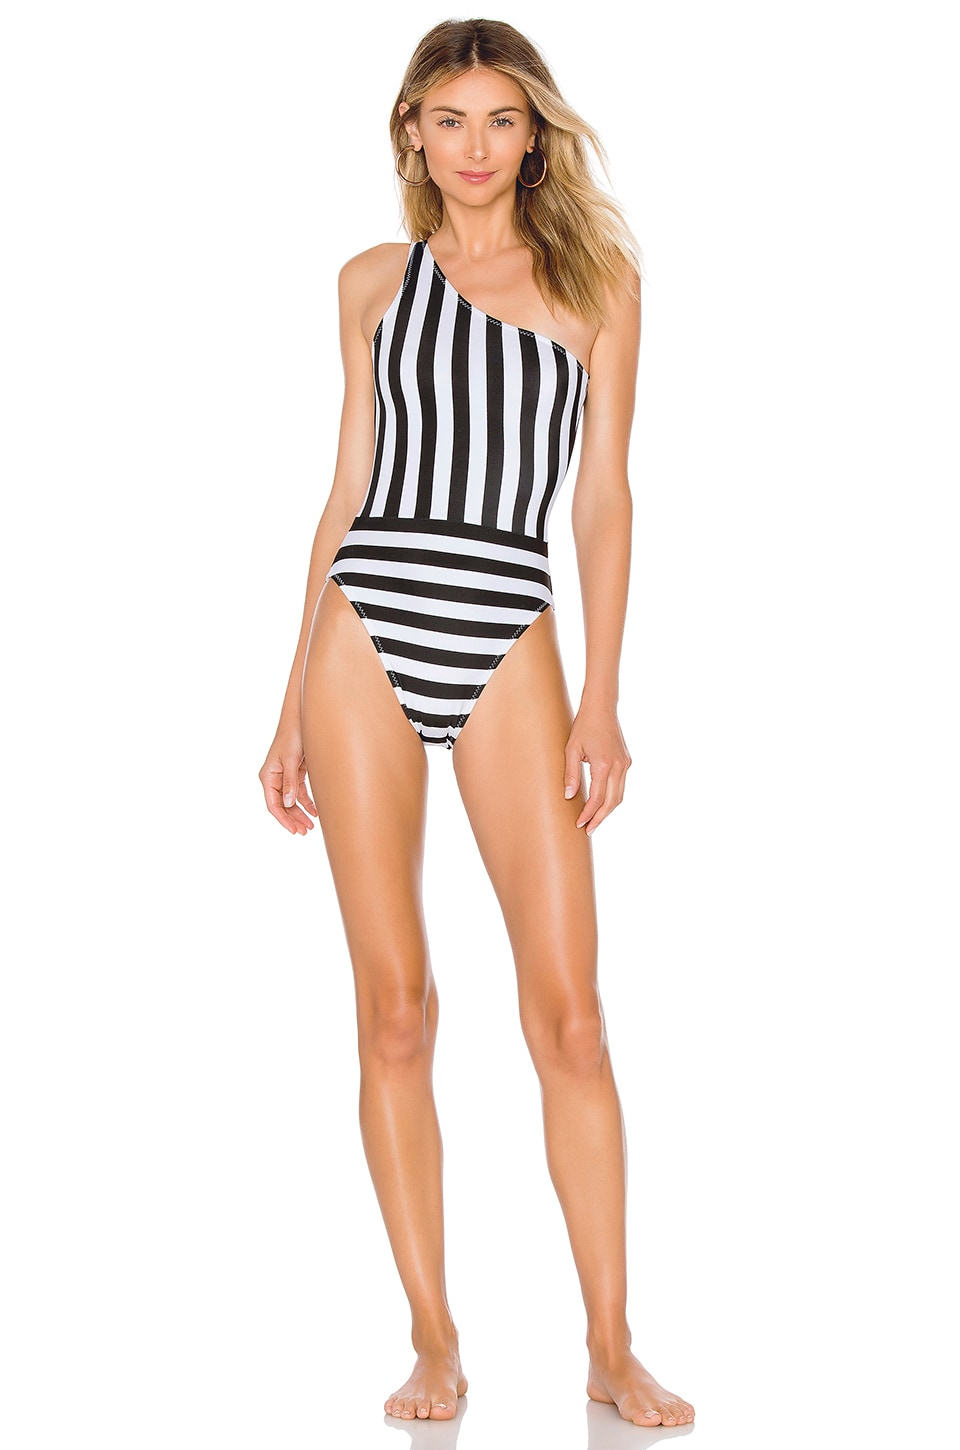 NORMA KAMALI One Shoulder Striped One-Piece Swimsuit in Black